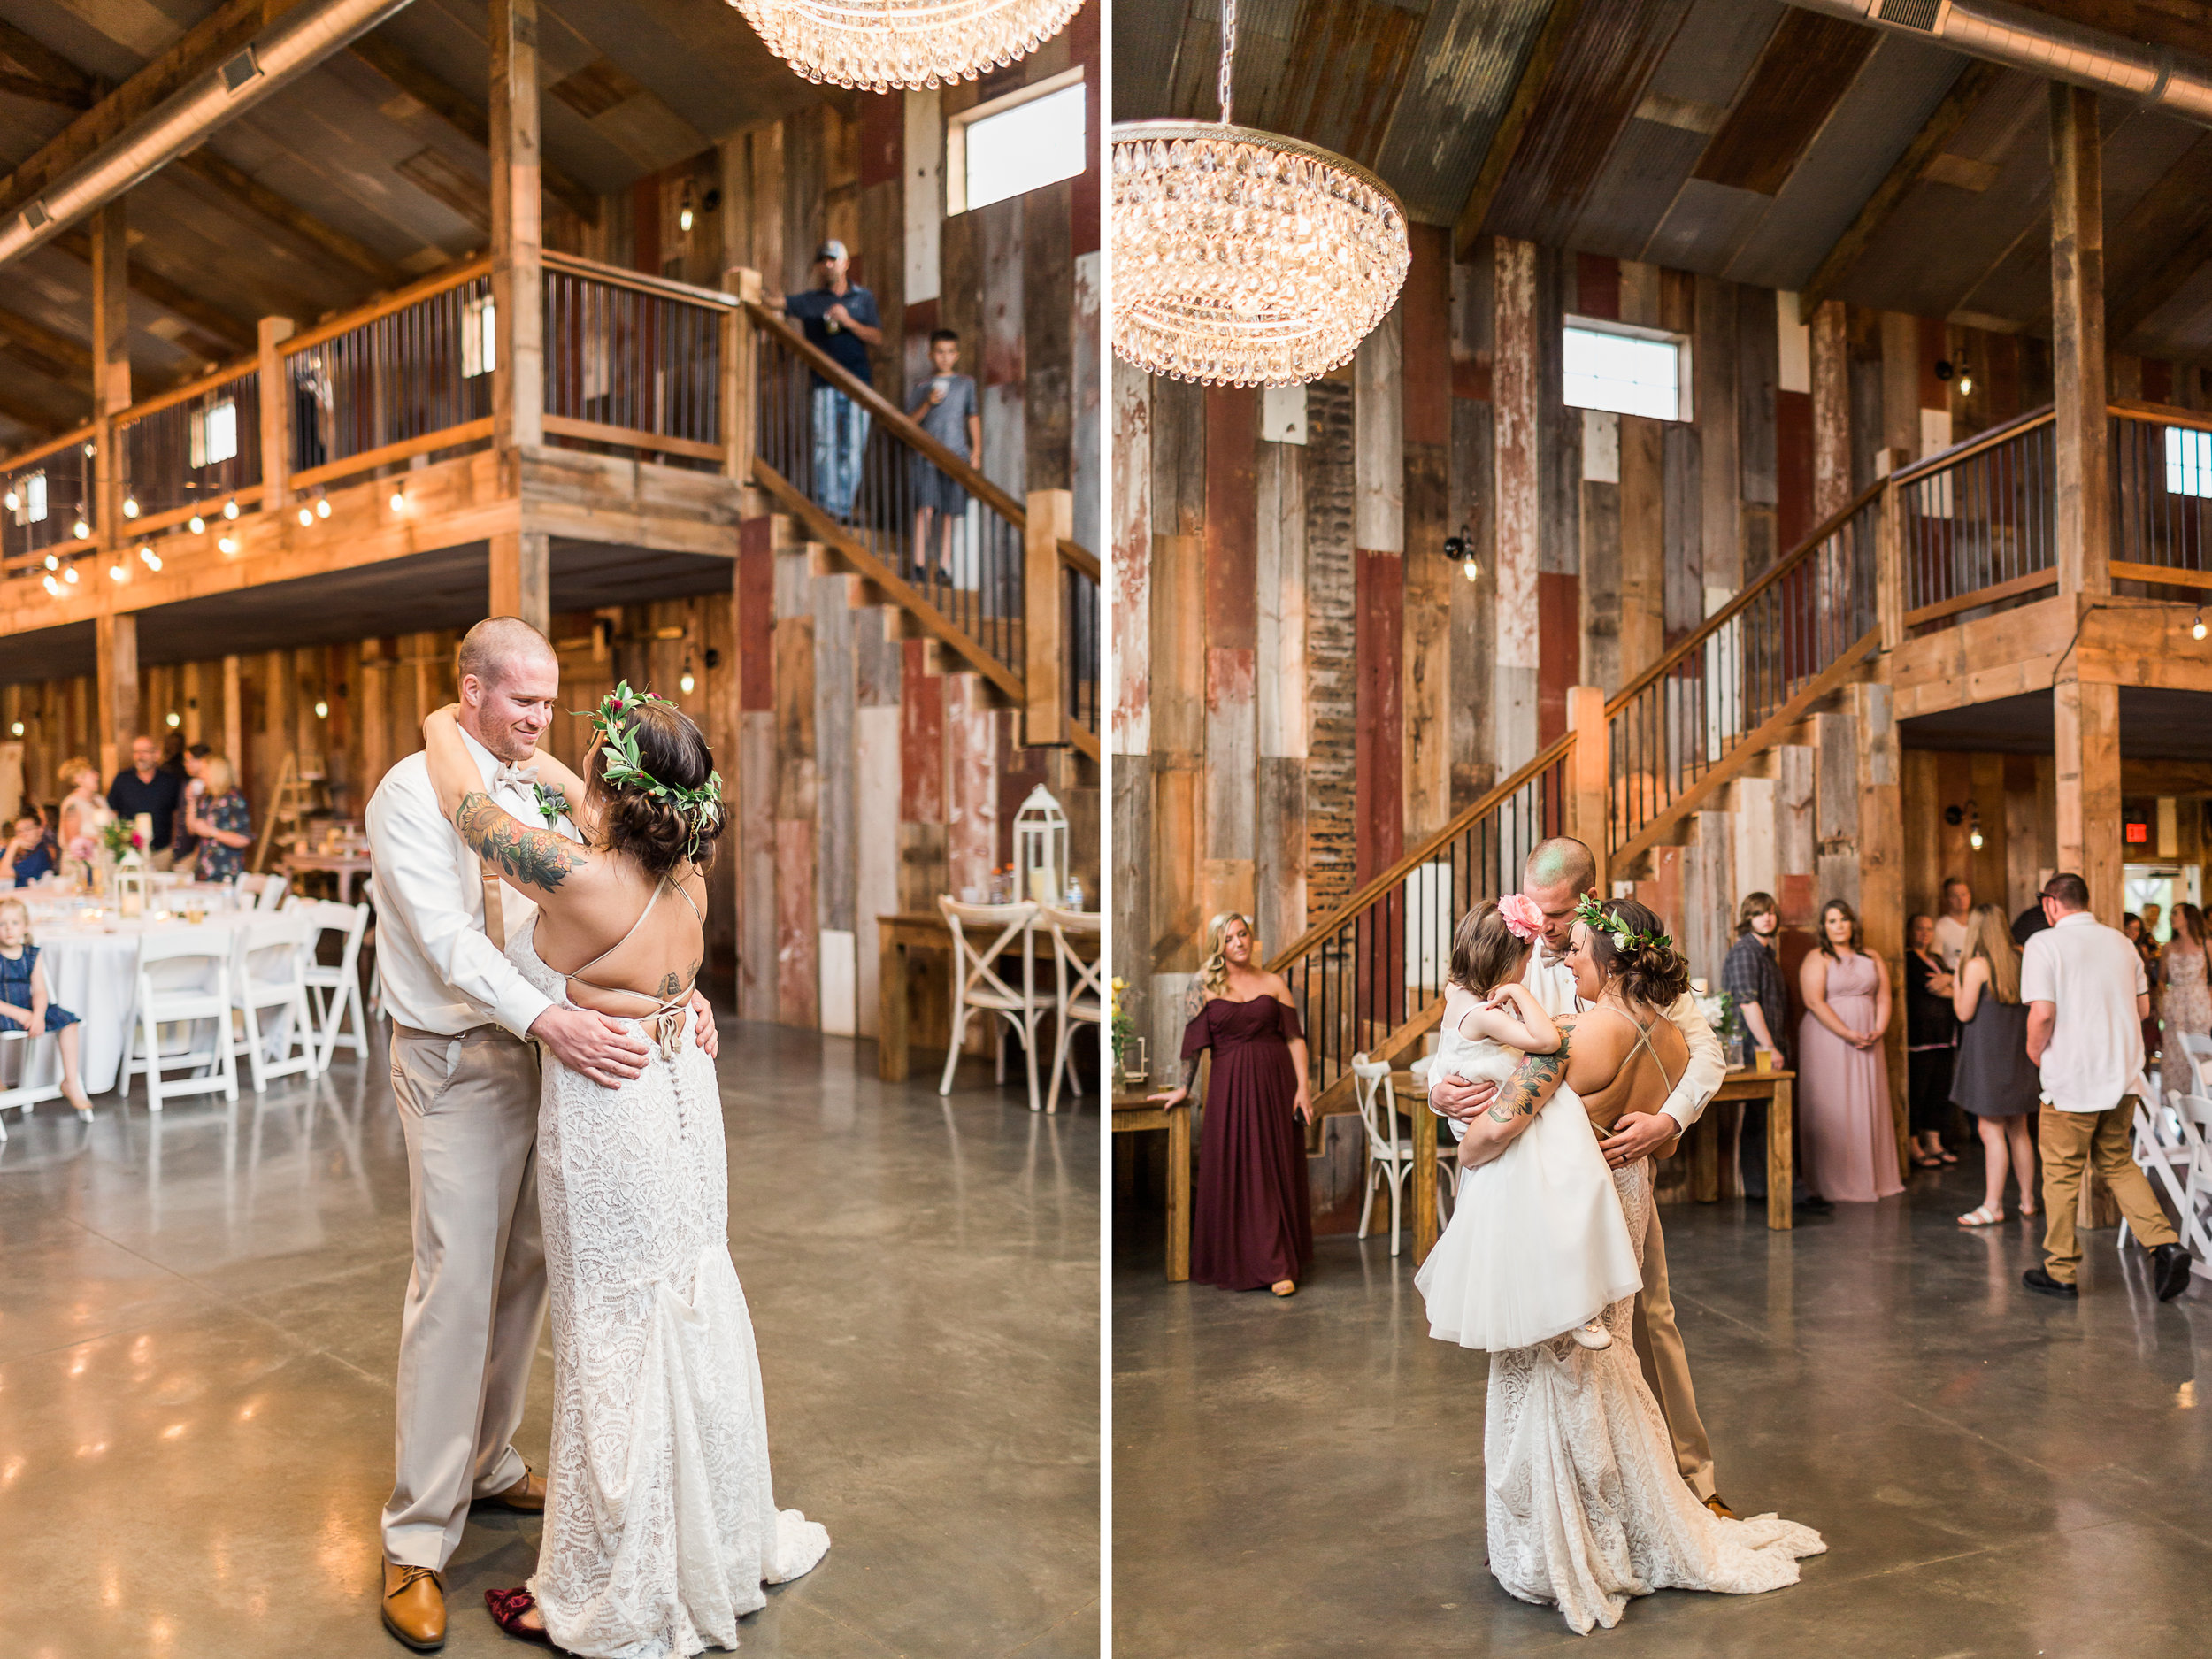 romanticbarnwedding-21.jpg